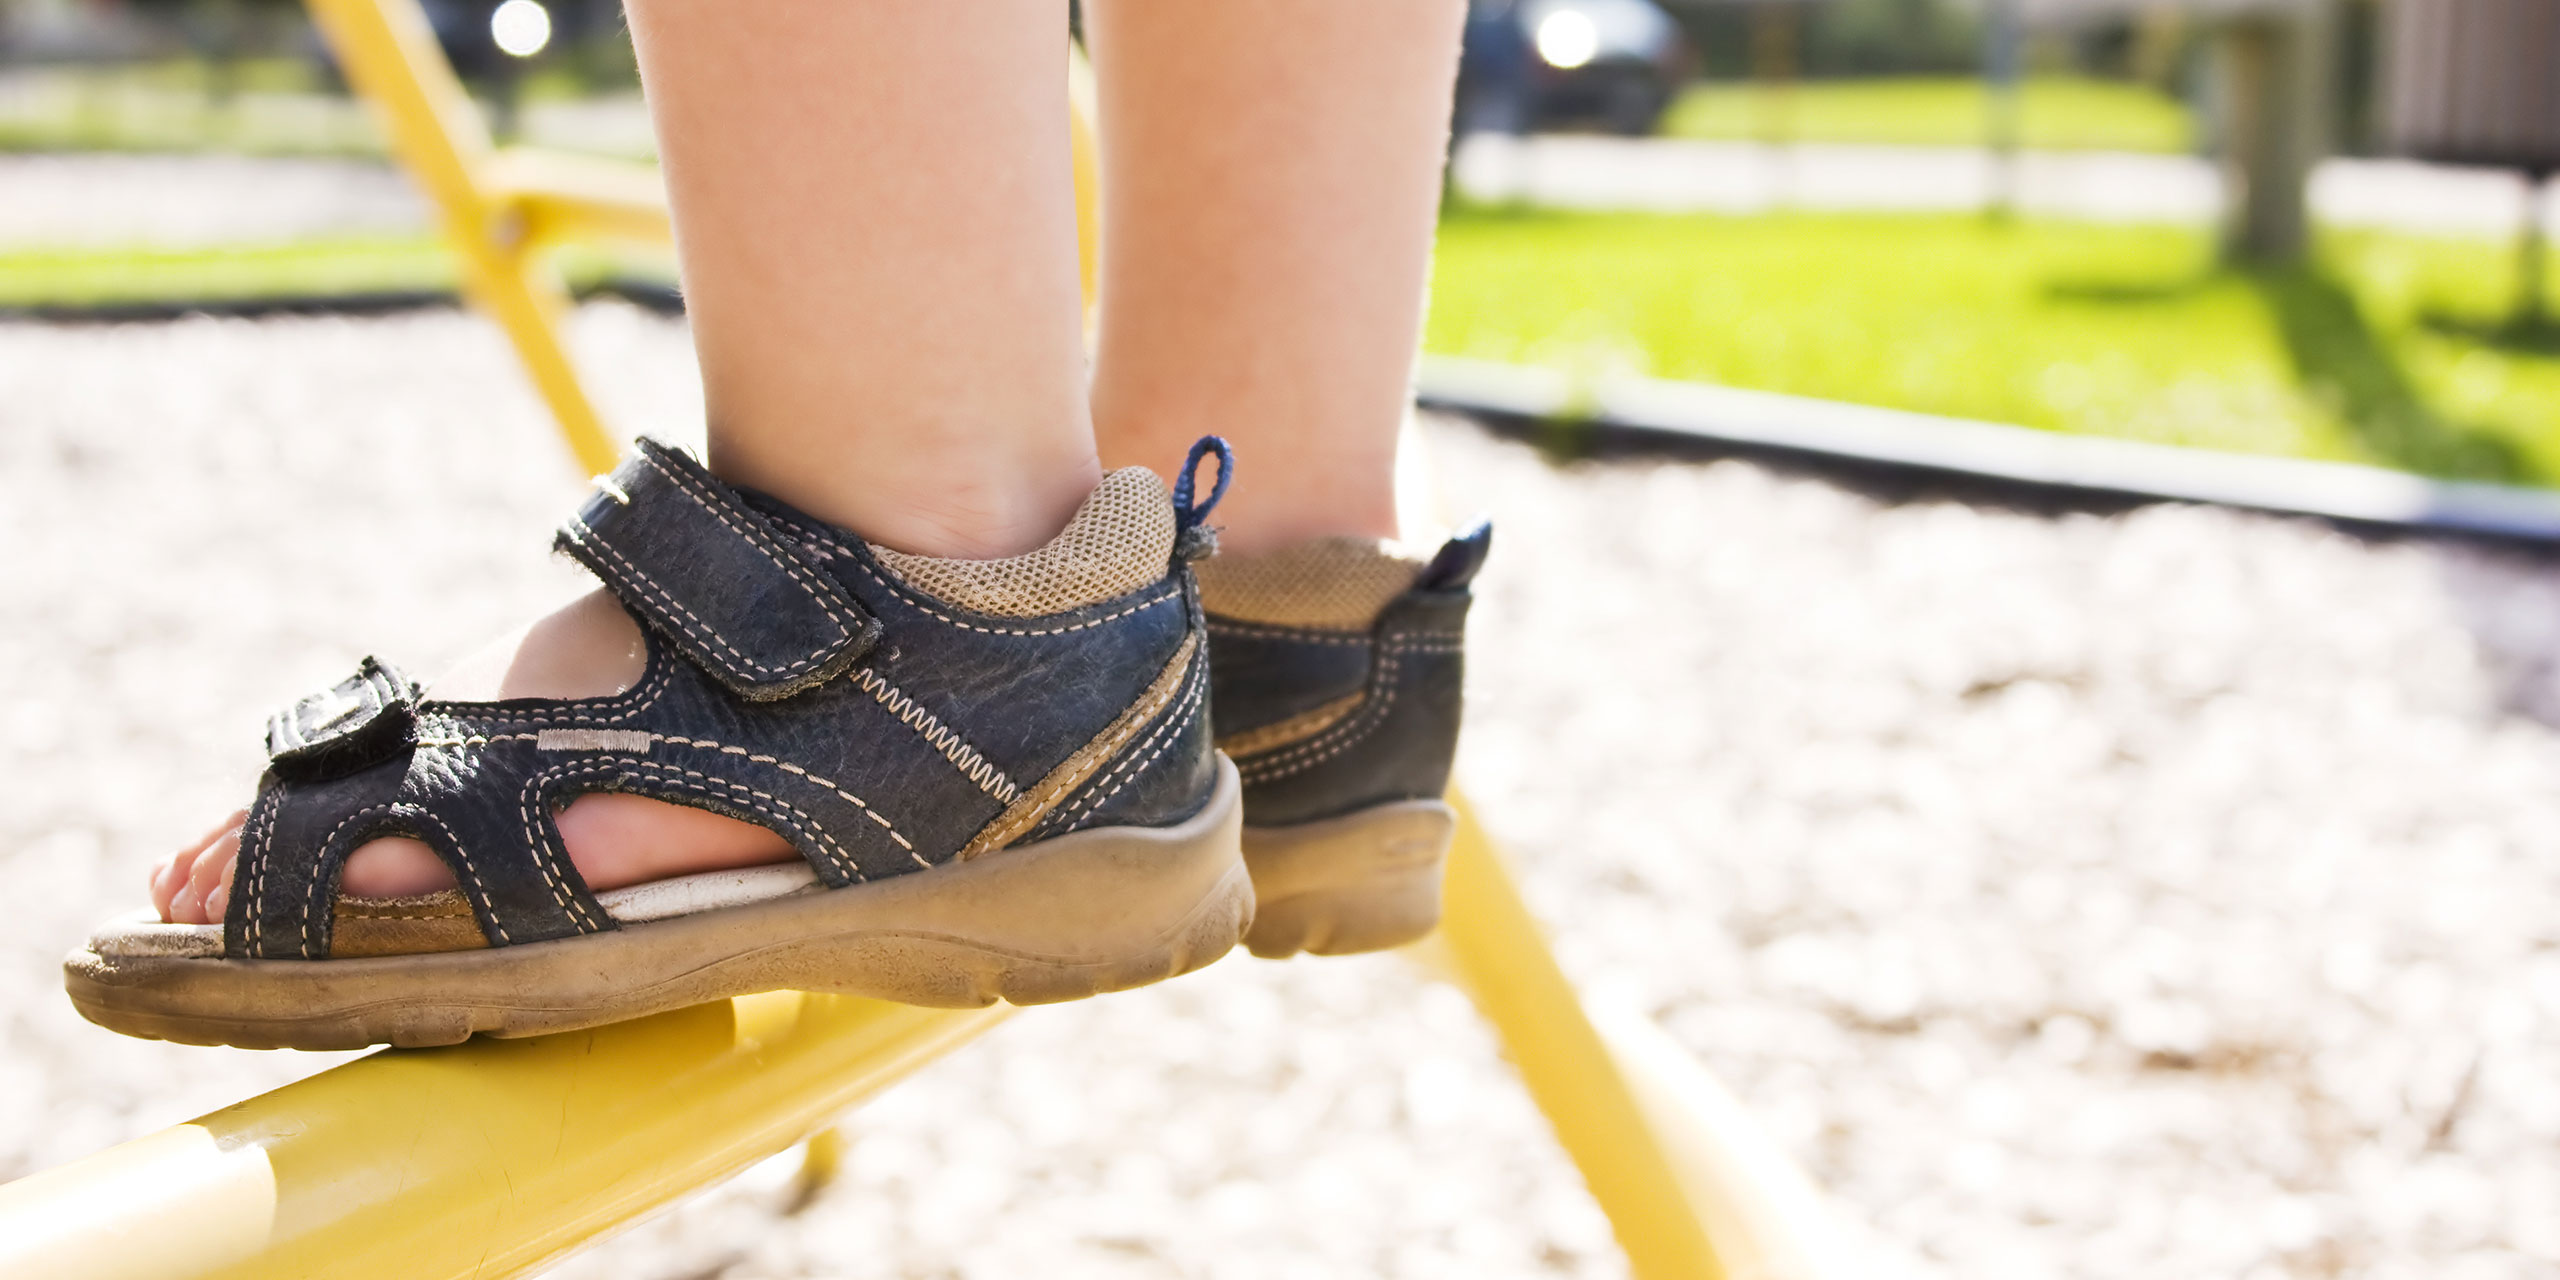 Child Wearing Sandals at Playground; Courtesy of Paul-André Belle-Isle/Shutterstock.com